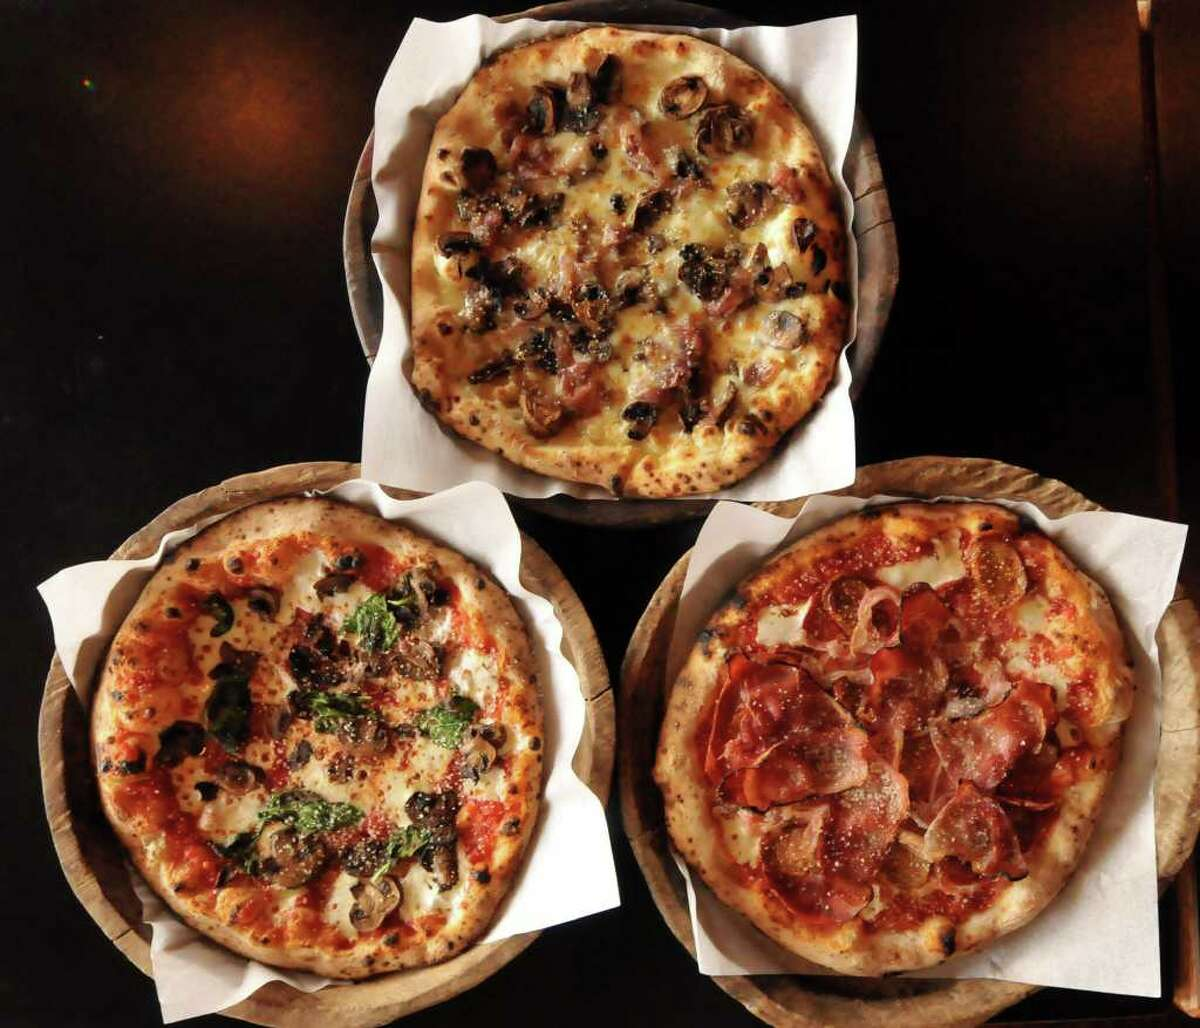 Dough Pizzeria Napoletana varieties include Margherita with mushrooms (clockwise from top), Pork Love and fontina.